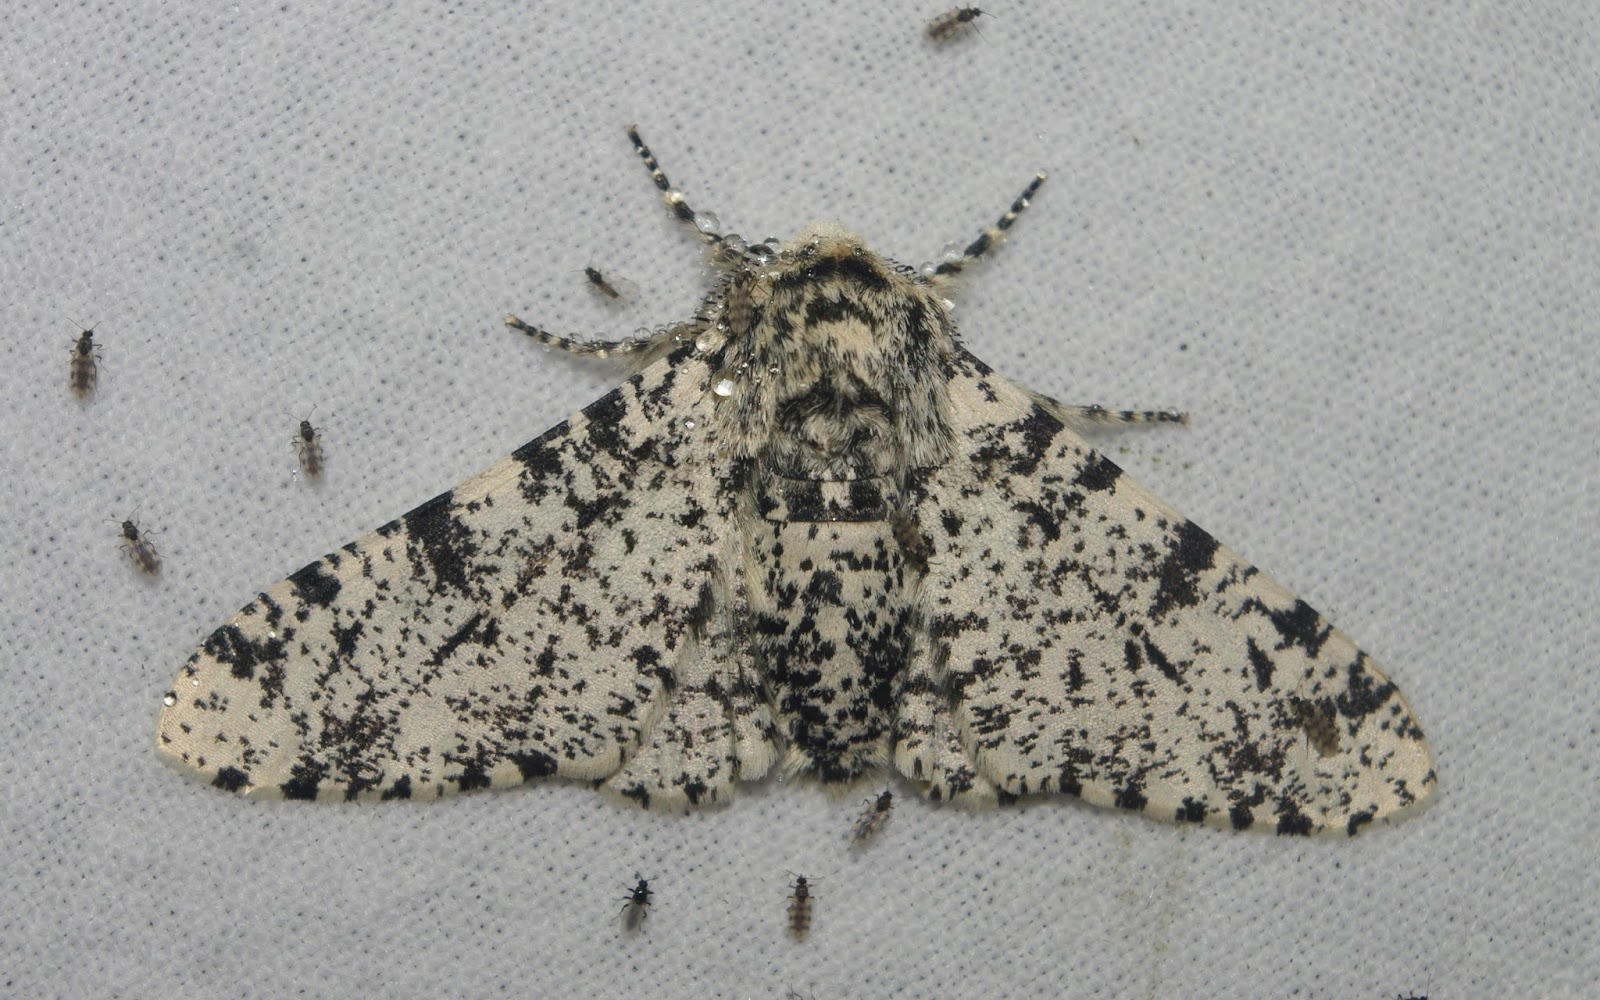 the peppered moth These peppered moths offer an iconic example of natural selection, or evolution at work a single altered gene explains the black wings (left), new data show.